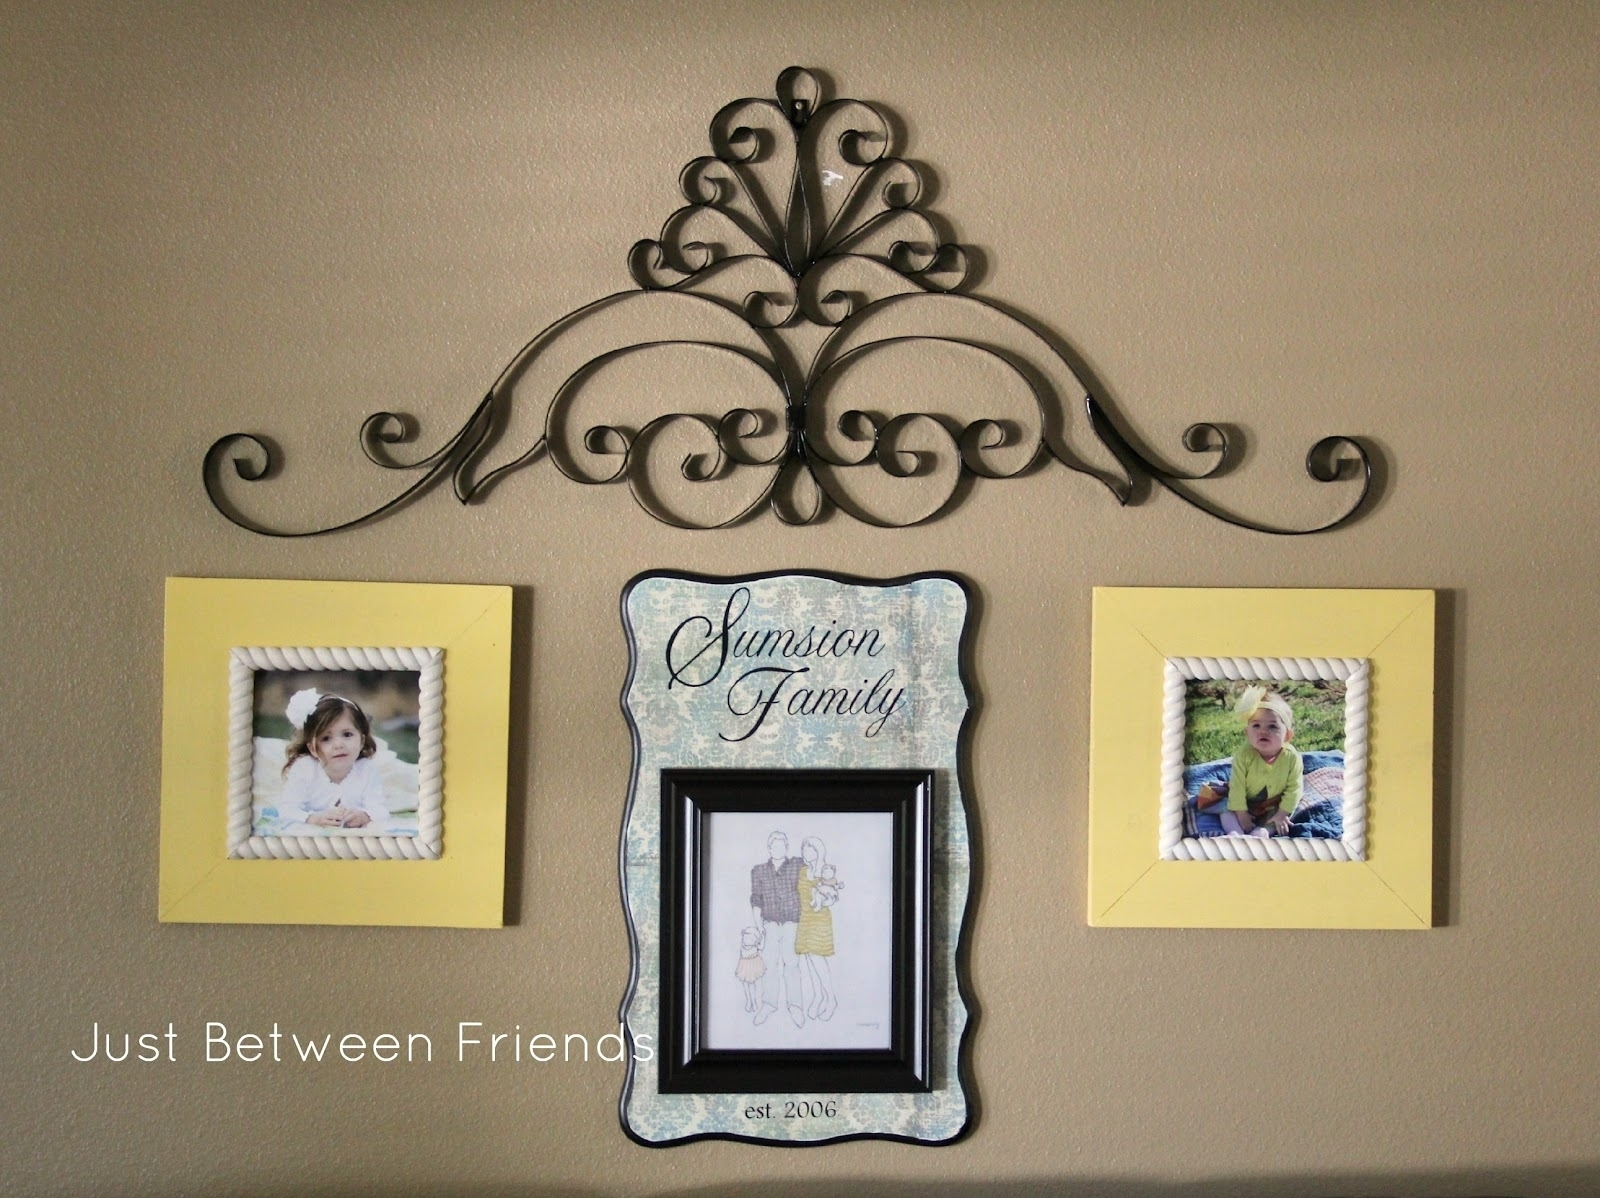 Hobby Lobby Bathroom Wall Decor • Bathroom Decor In Most Popular Hobby Lobby Wall Accents (View 8 of 15)